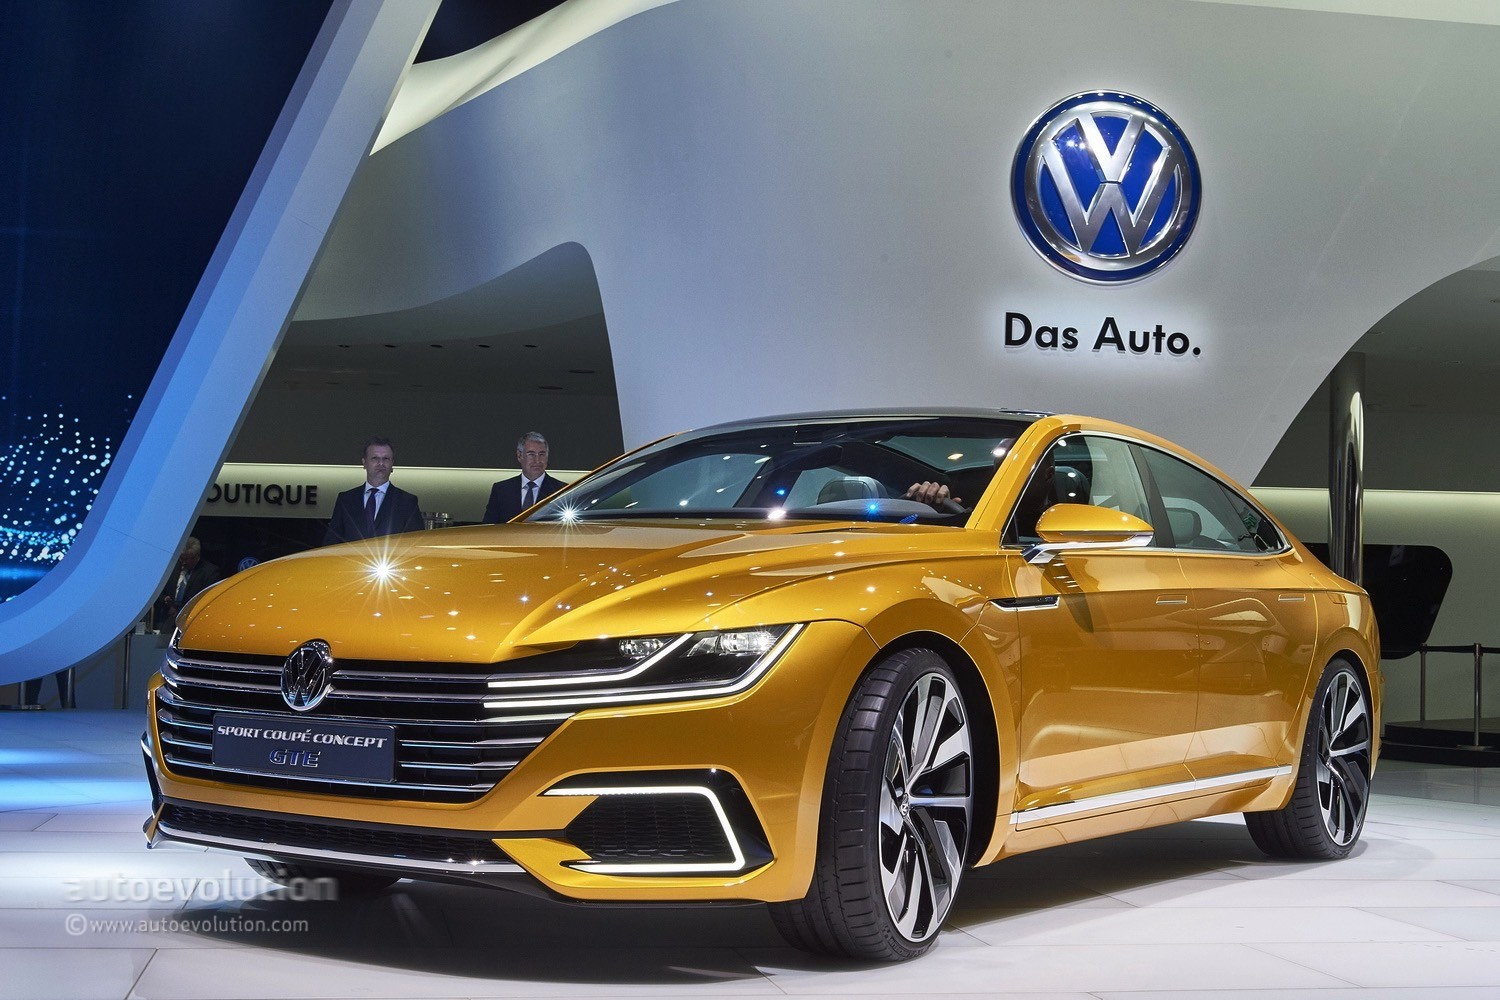 2018 volkswagen arteon slated to premiere at 2017 geneva motor show autoevolution. Black Bedroom Furniture Sets. Home Design Ideas